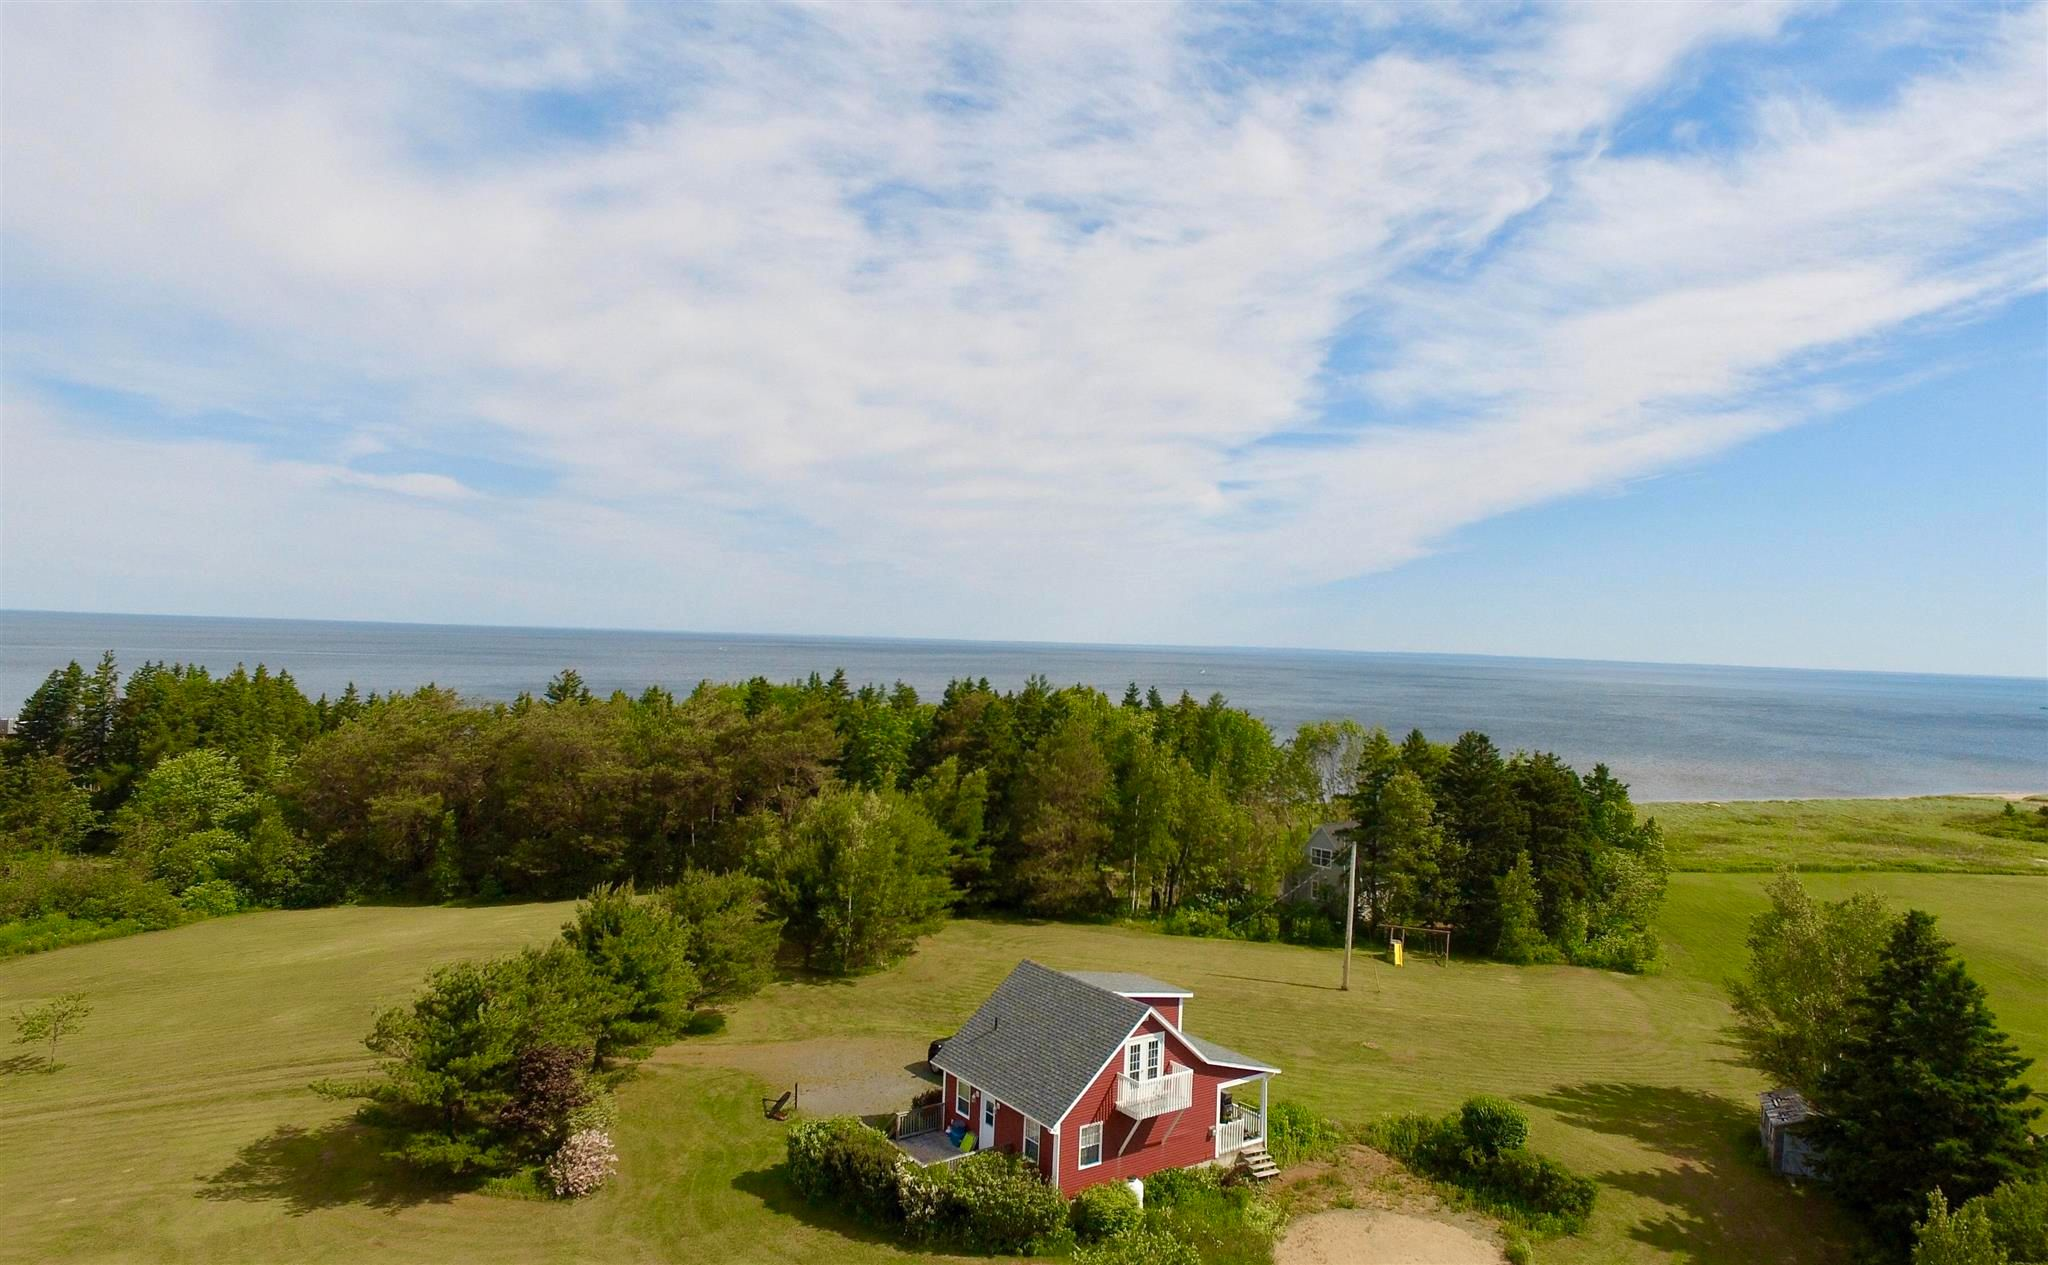 Main Photo: 44 MacLeod Lane in Toney River: 108-Rural Pictou County Residential for sale (Northern Region)  : MLS®# 202117581